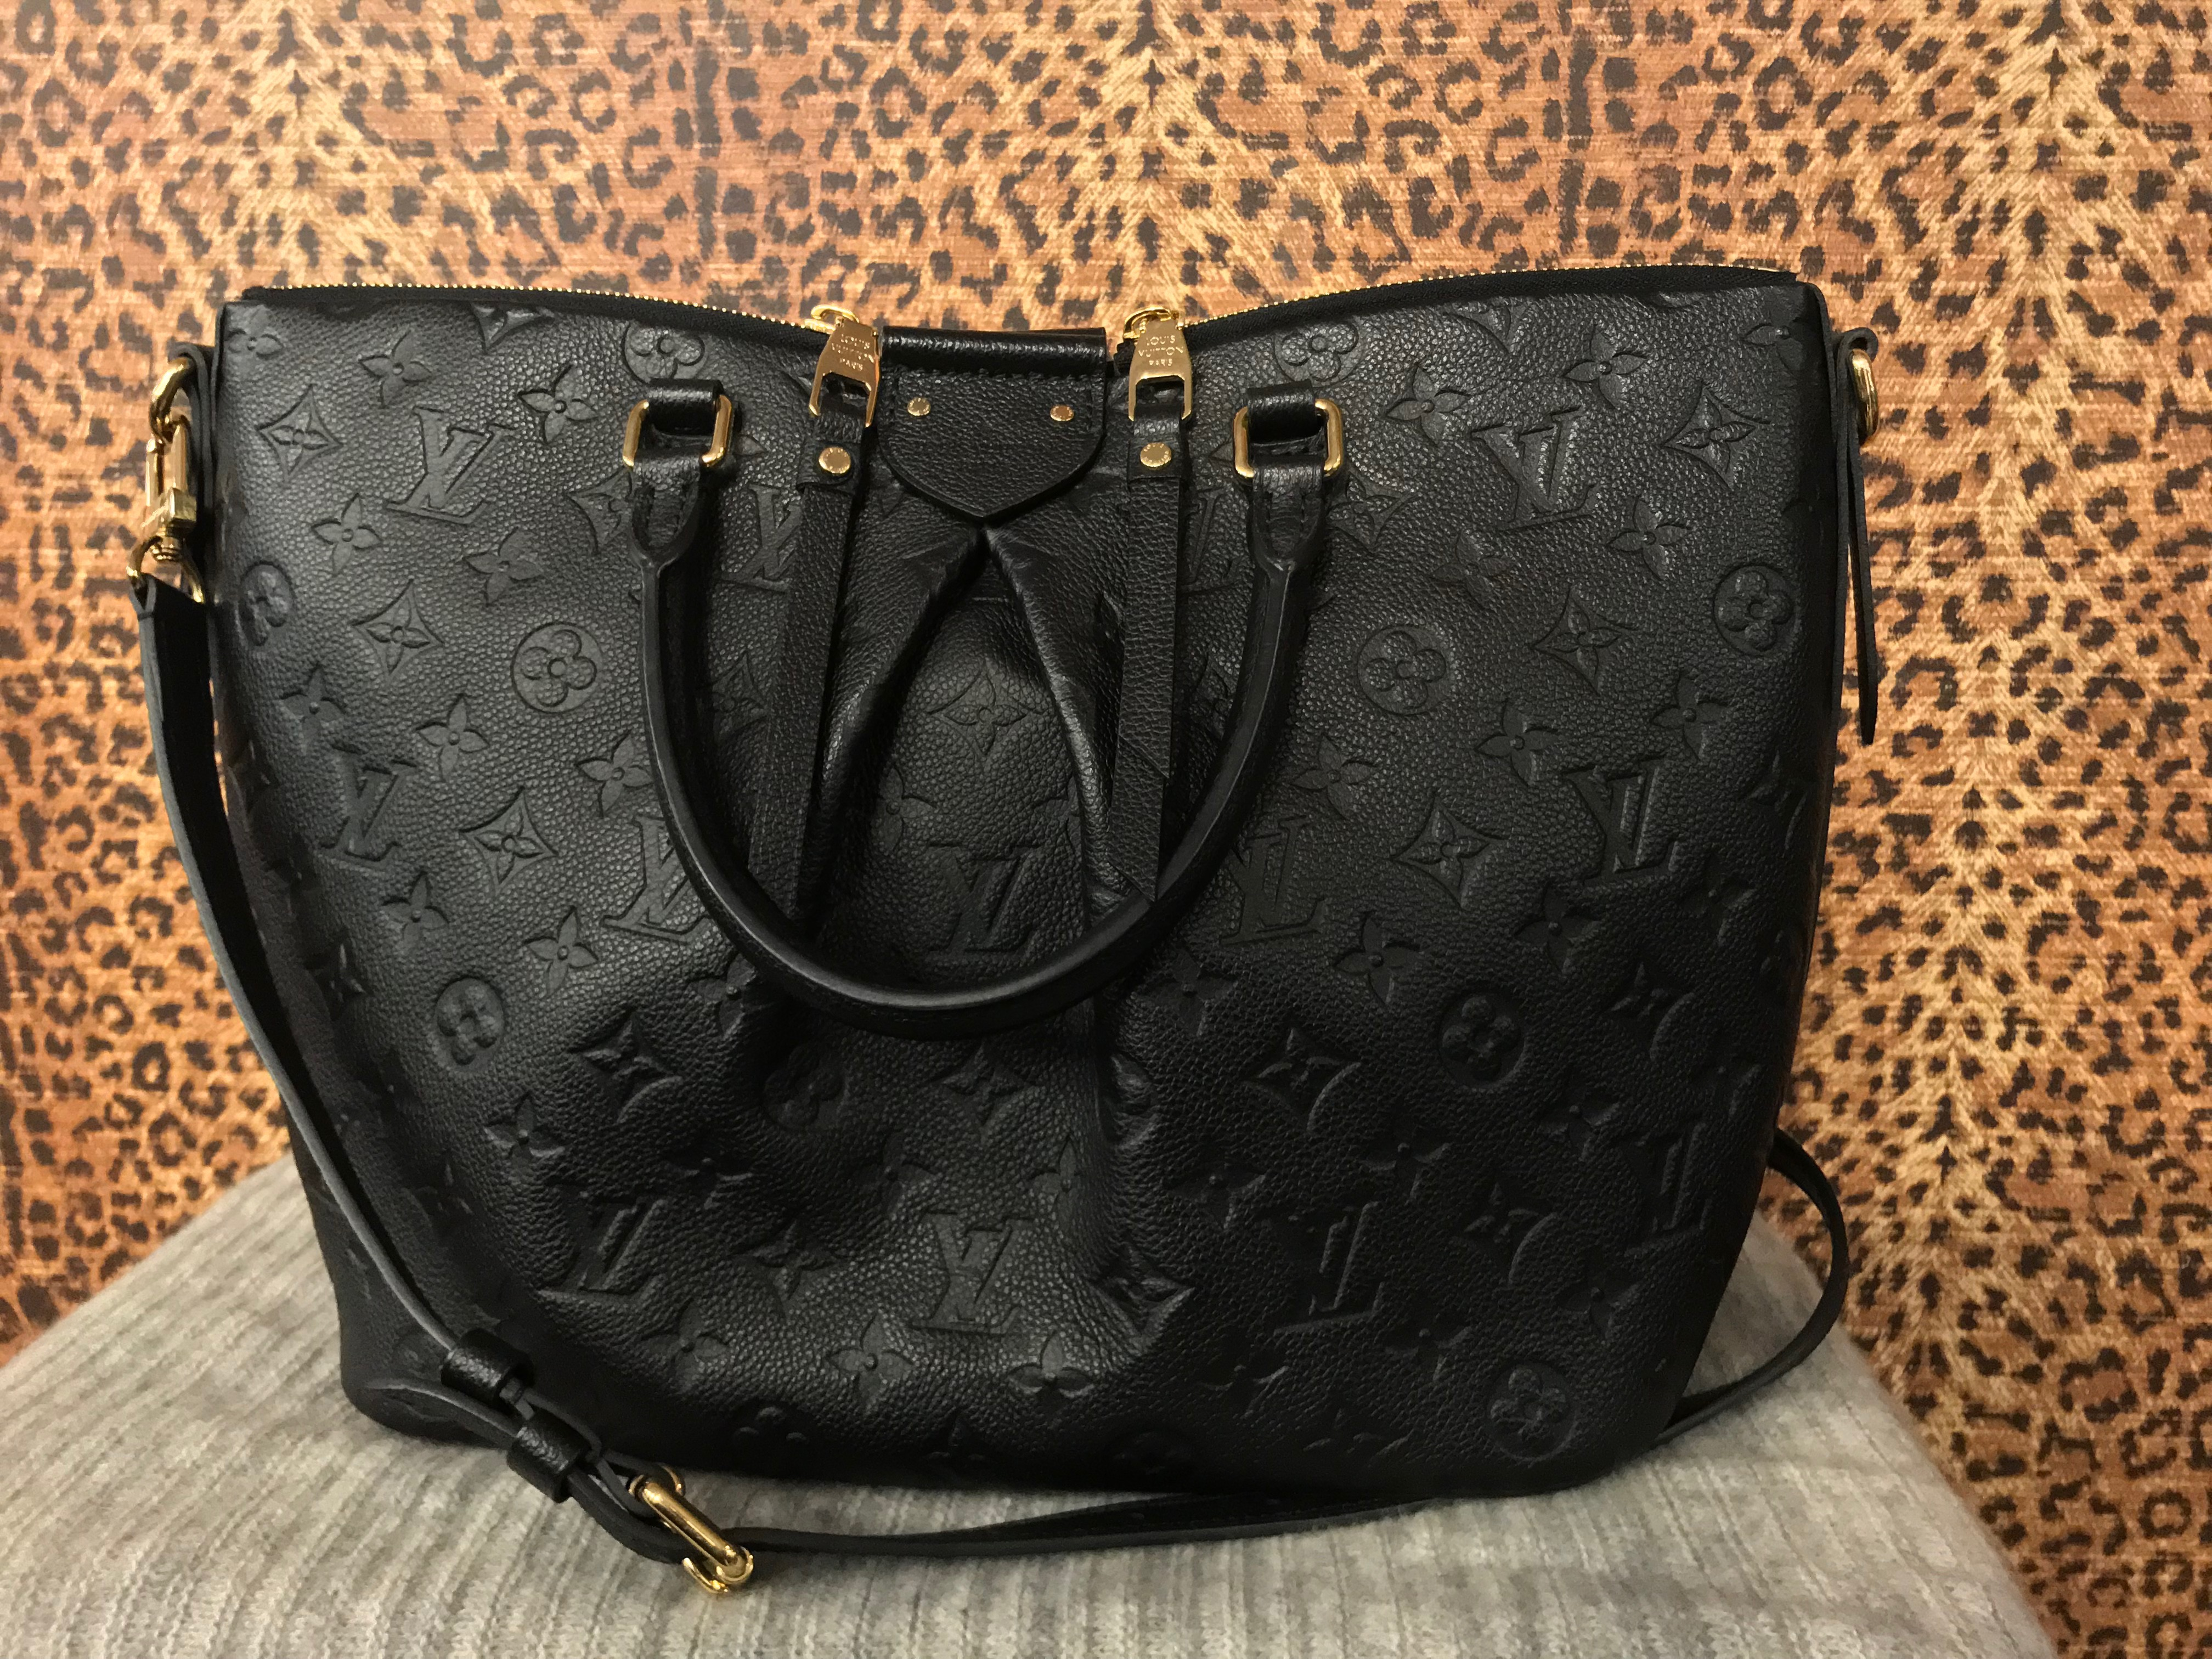 SOLD! Louis Vuitton~ Black, Leather, Purses, Handbags Price: $2325.71